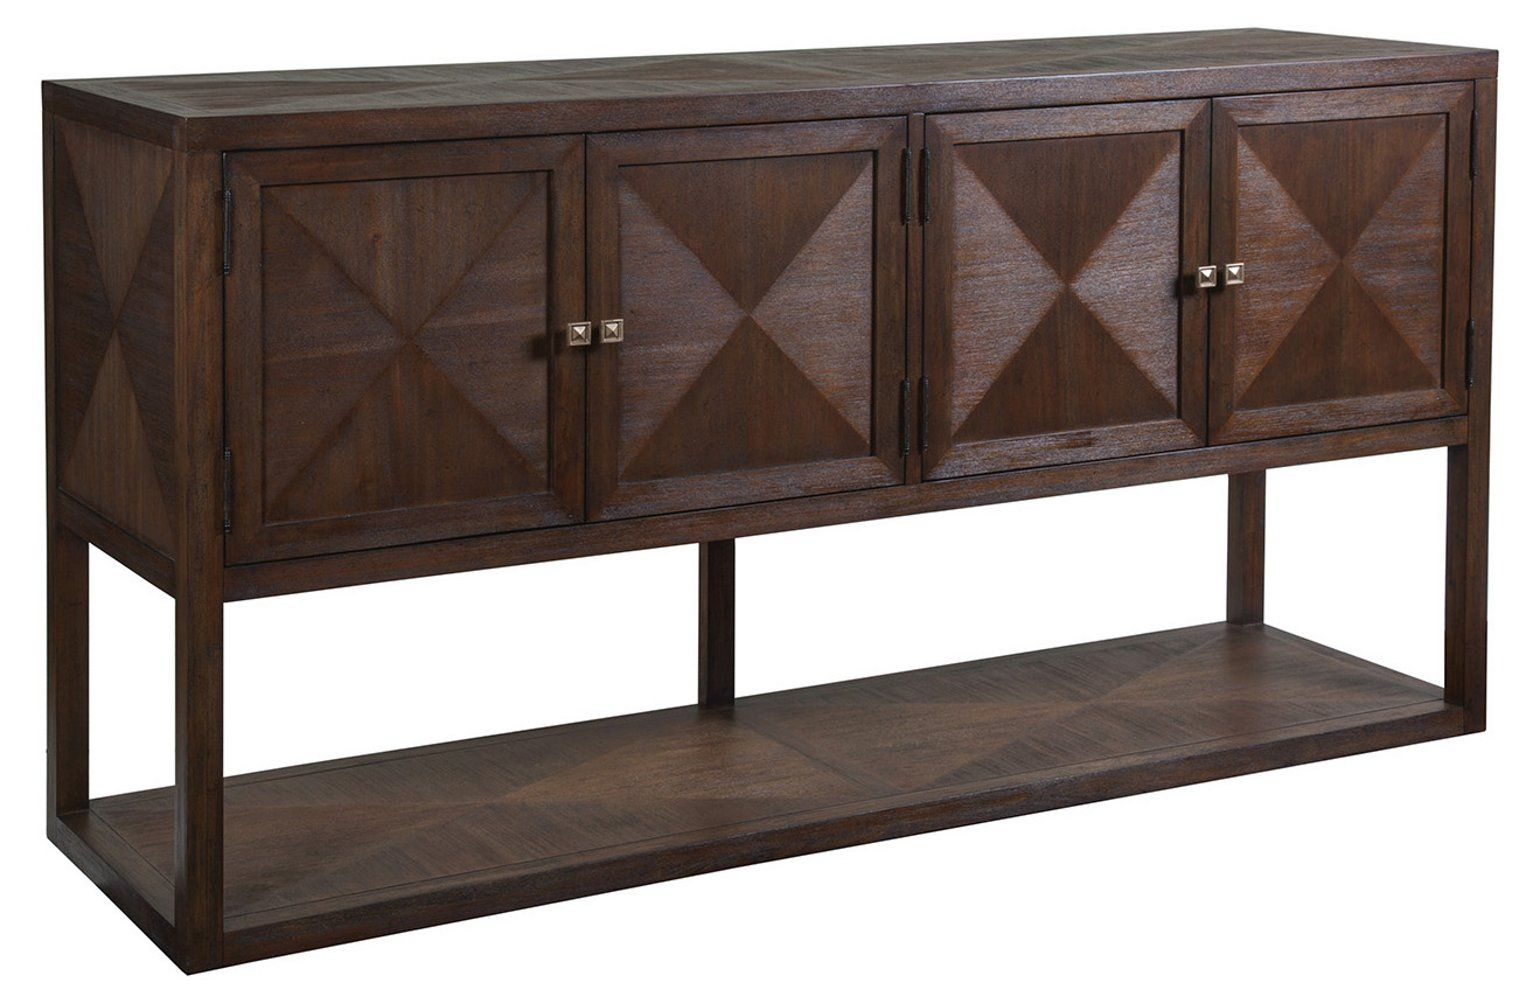 Ringo Sideboard, Marrone Brown – Artistica – Brands One Throughout Most Recently Released Ellenton Sideboards (#19 of 20)